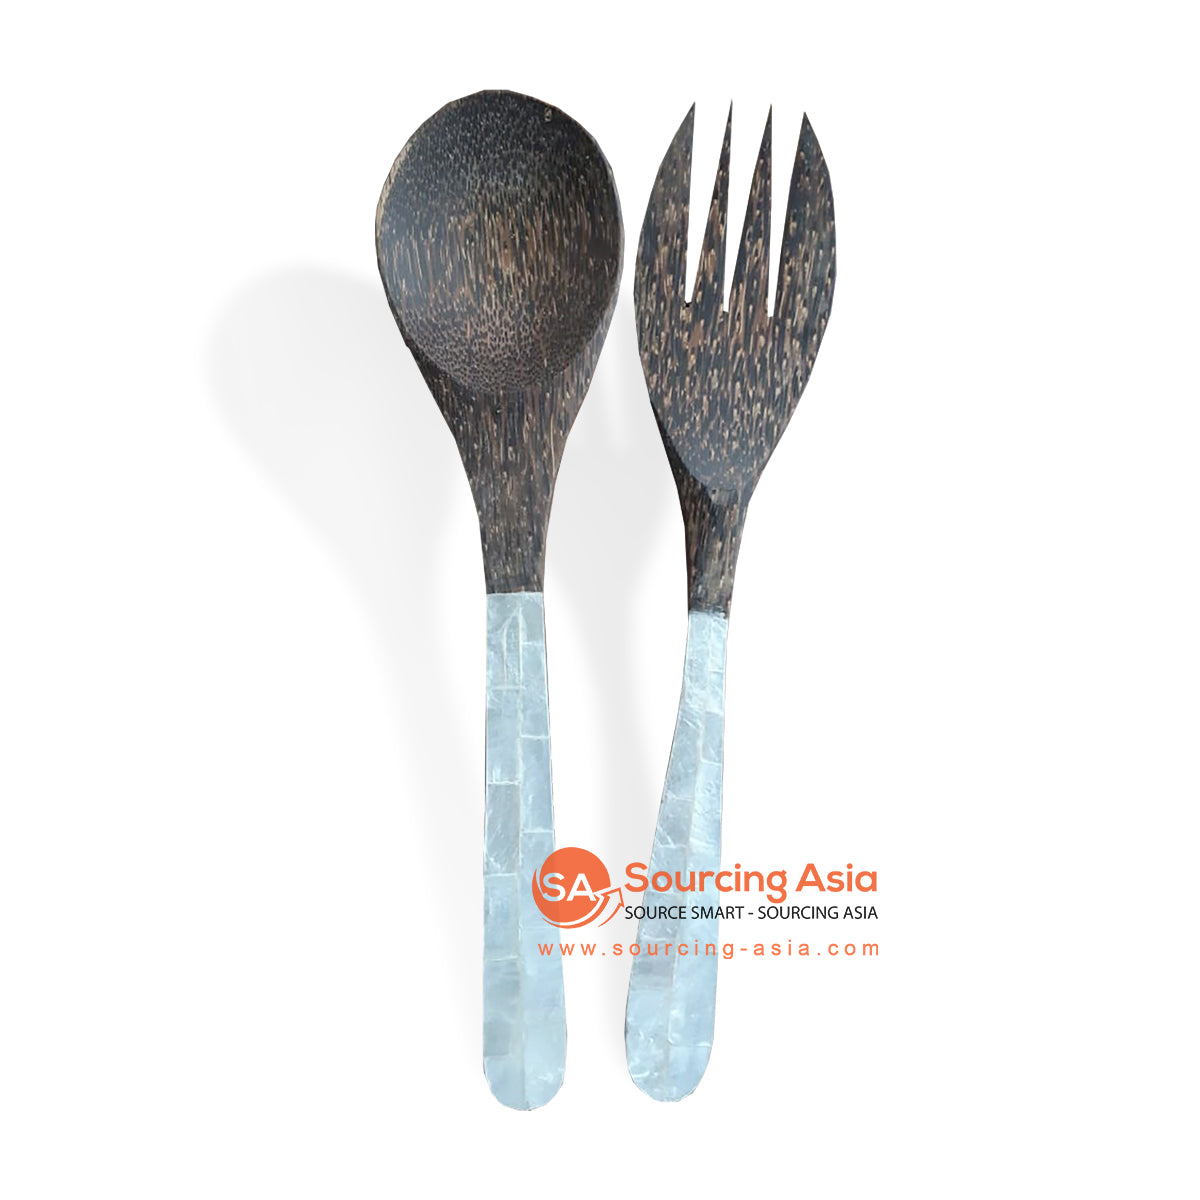 CNT004 WOODEN SPOON AND FORK